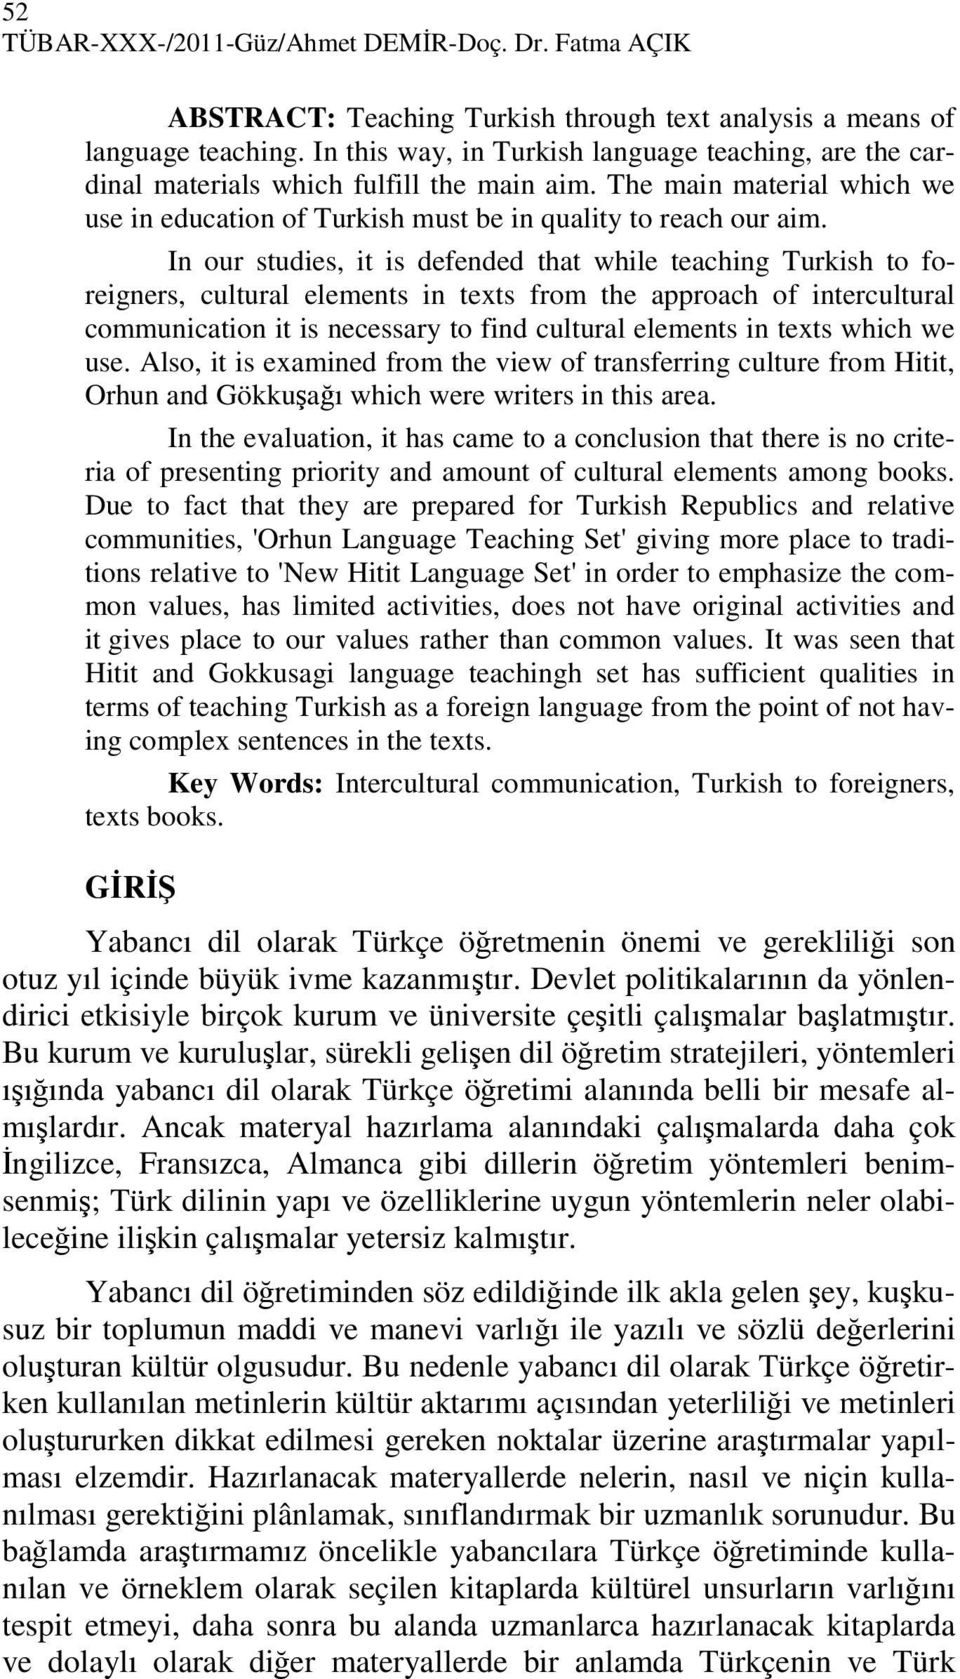 In our studies, it is defended that while teaching Turkish to foreigners, cultural elements in texts from the approach of intercultural communication it is necessary to find cultural elements in